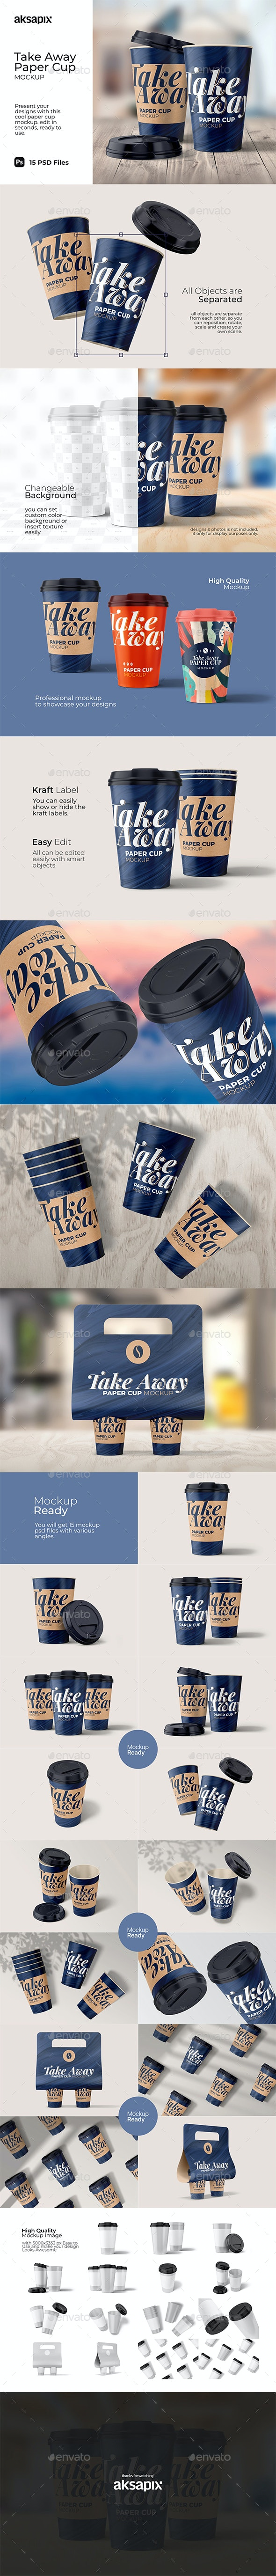 Take Away Paper Cup - Mockup - Food and Drink Packaging